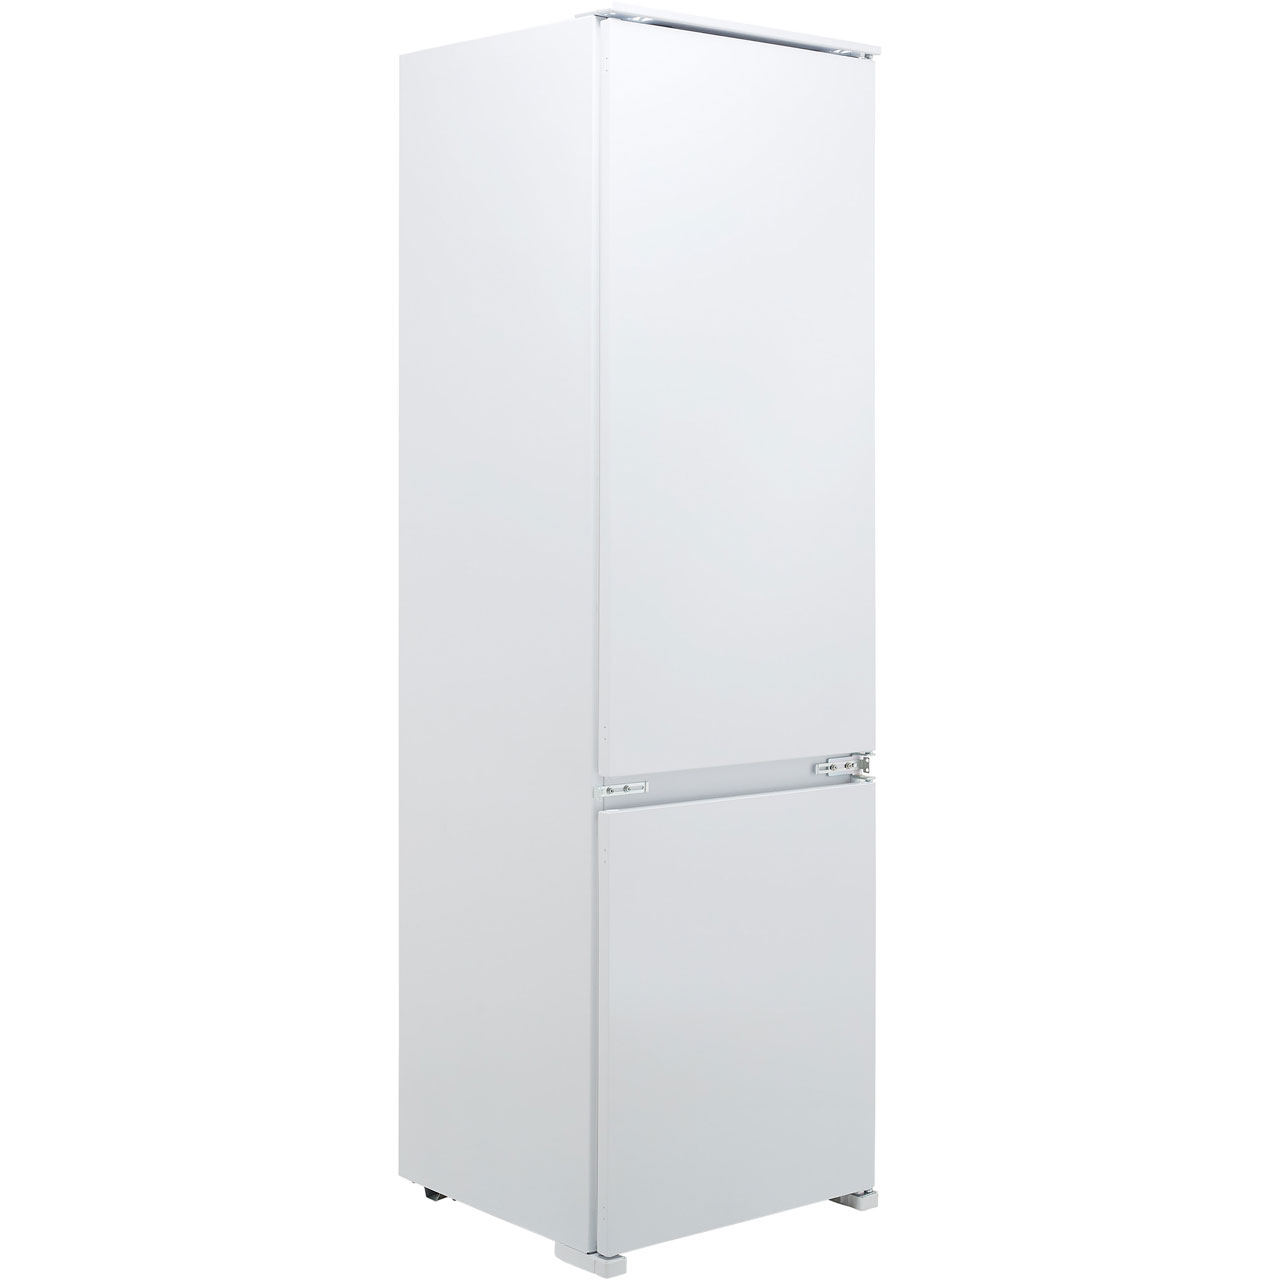 Fridgemaster MBC55275 Integrated Fridge Freezer in White